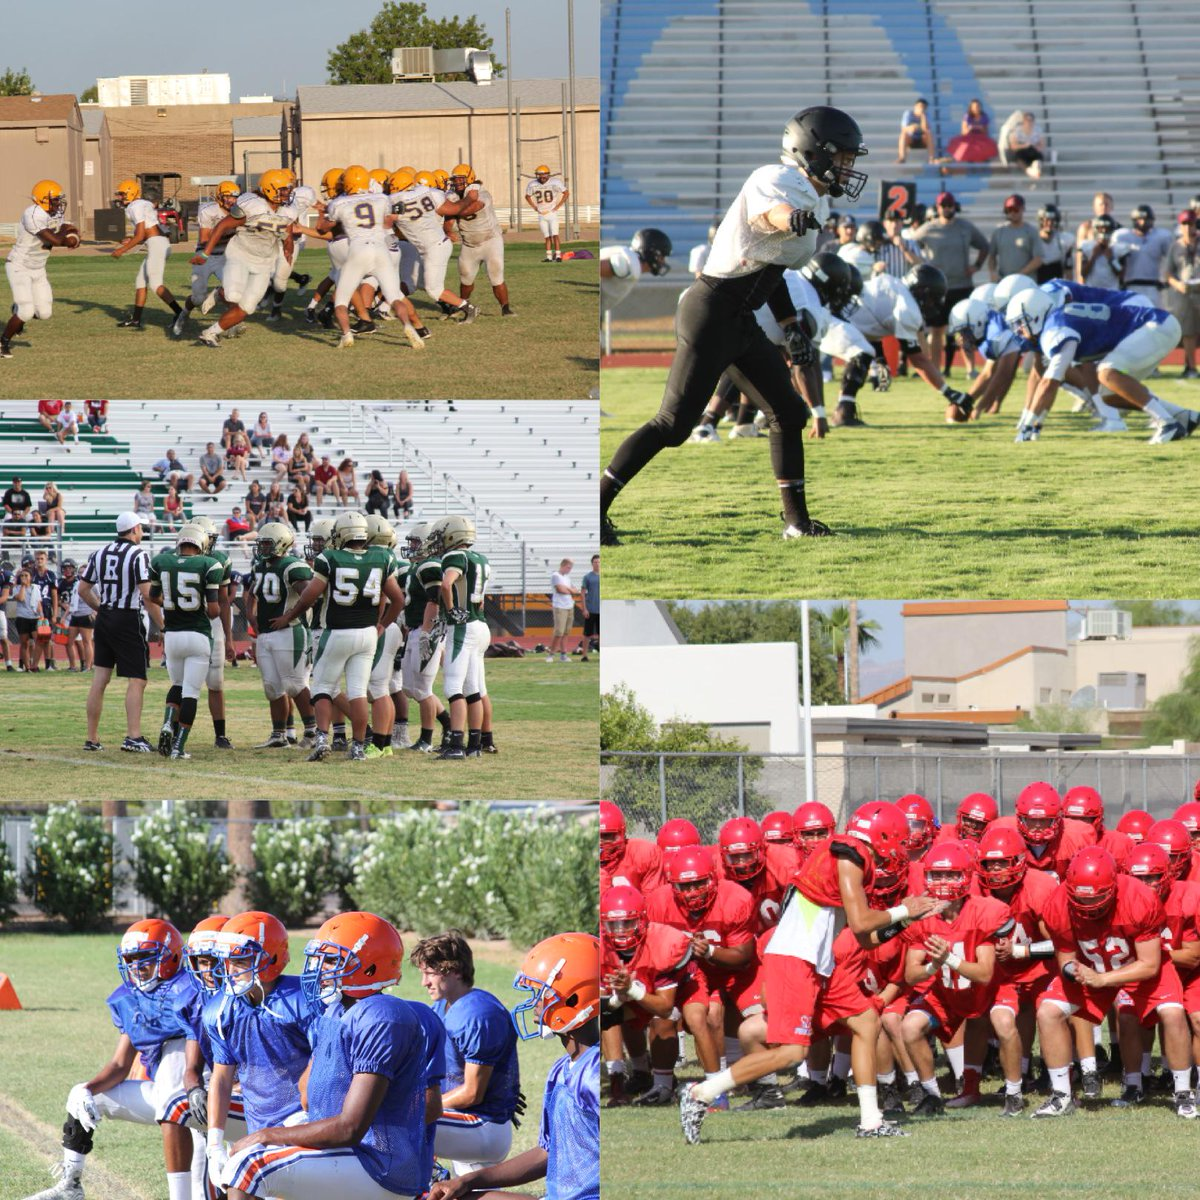 High school #sports are back, #support your #school! #retweet #favorite #backtoschool #football @mpsaz @MPSAzSports http://t.co/kIgvXLC2U7